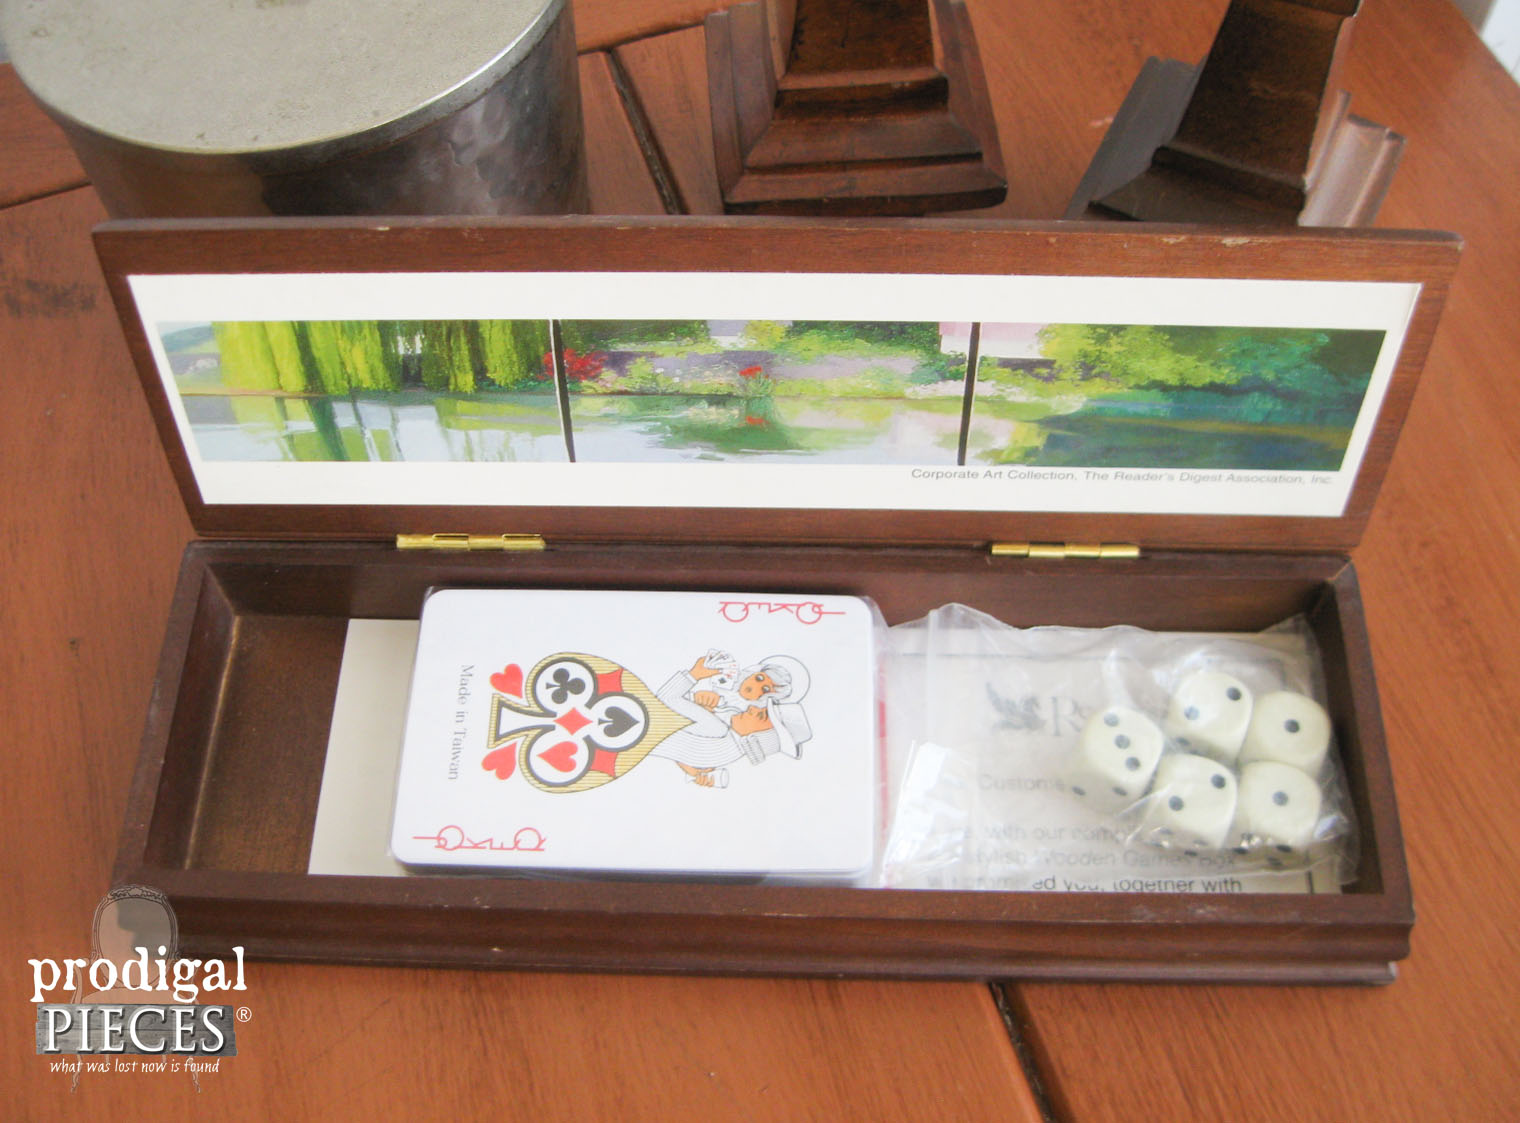 Vintage Reader's Digest Game Box | Prodigal Pieces | www.prodigalpieces.com